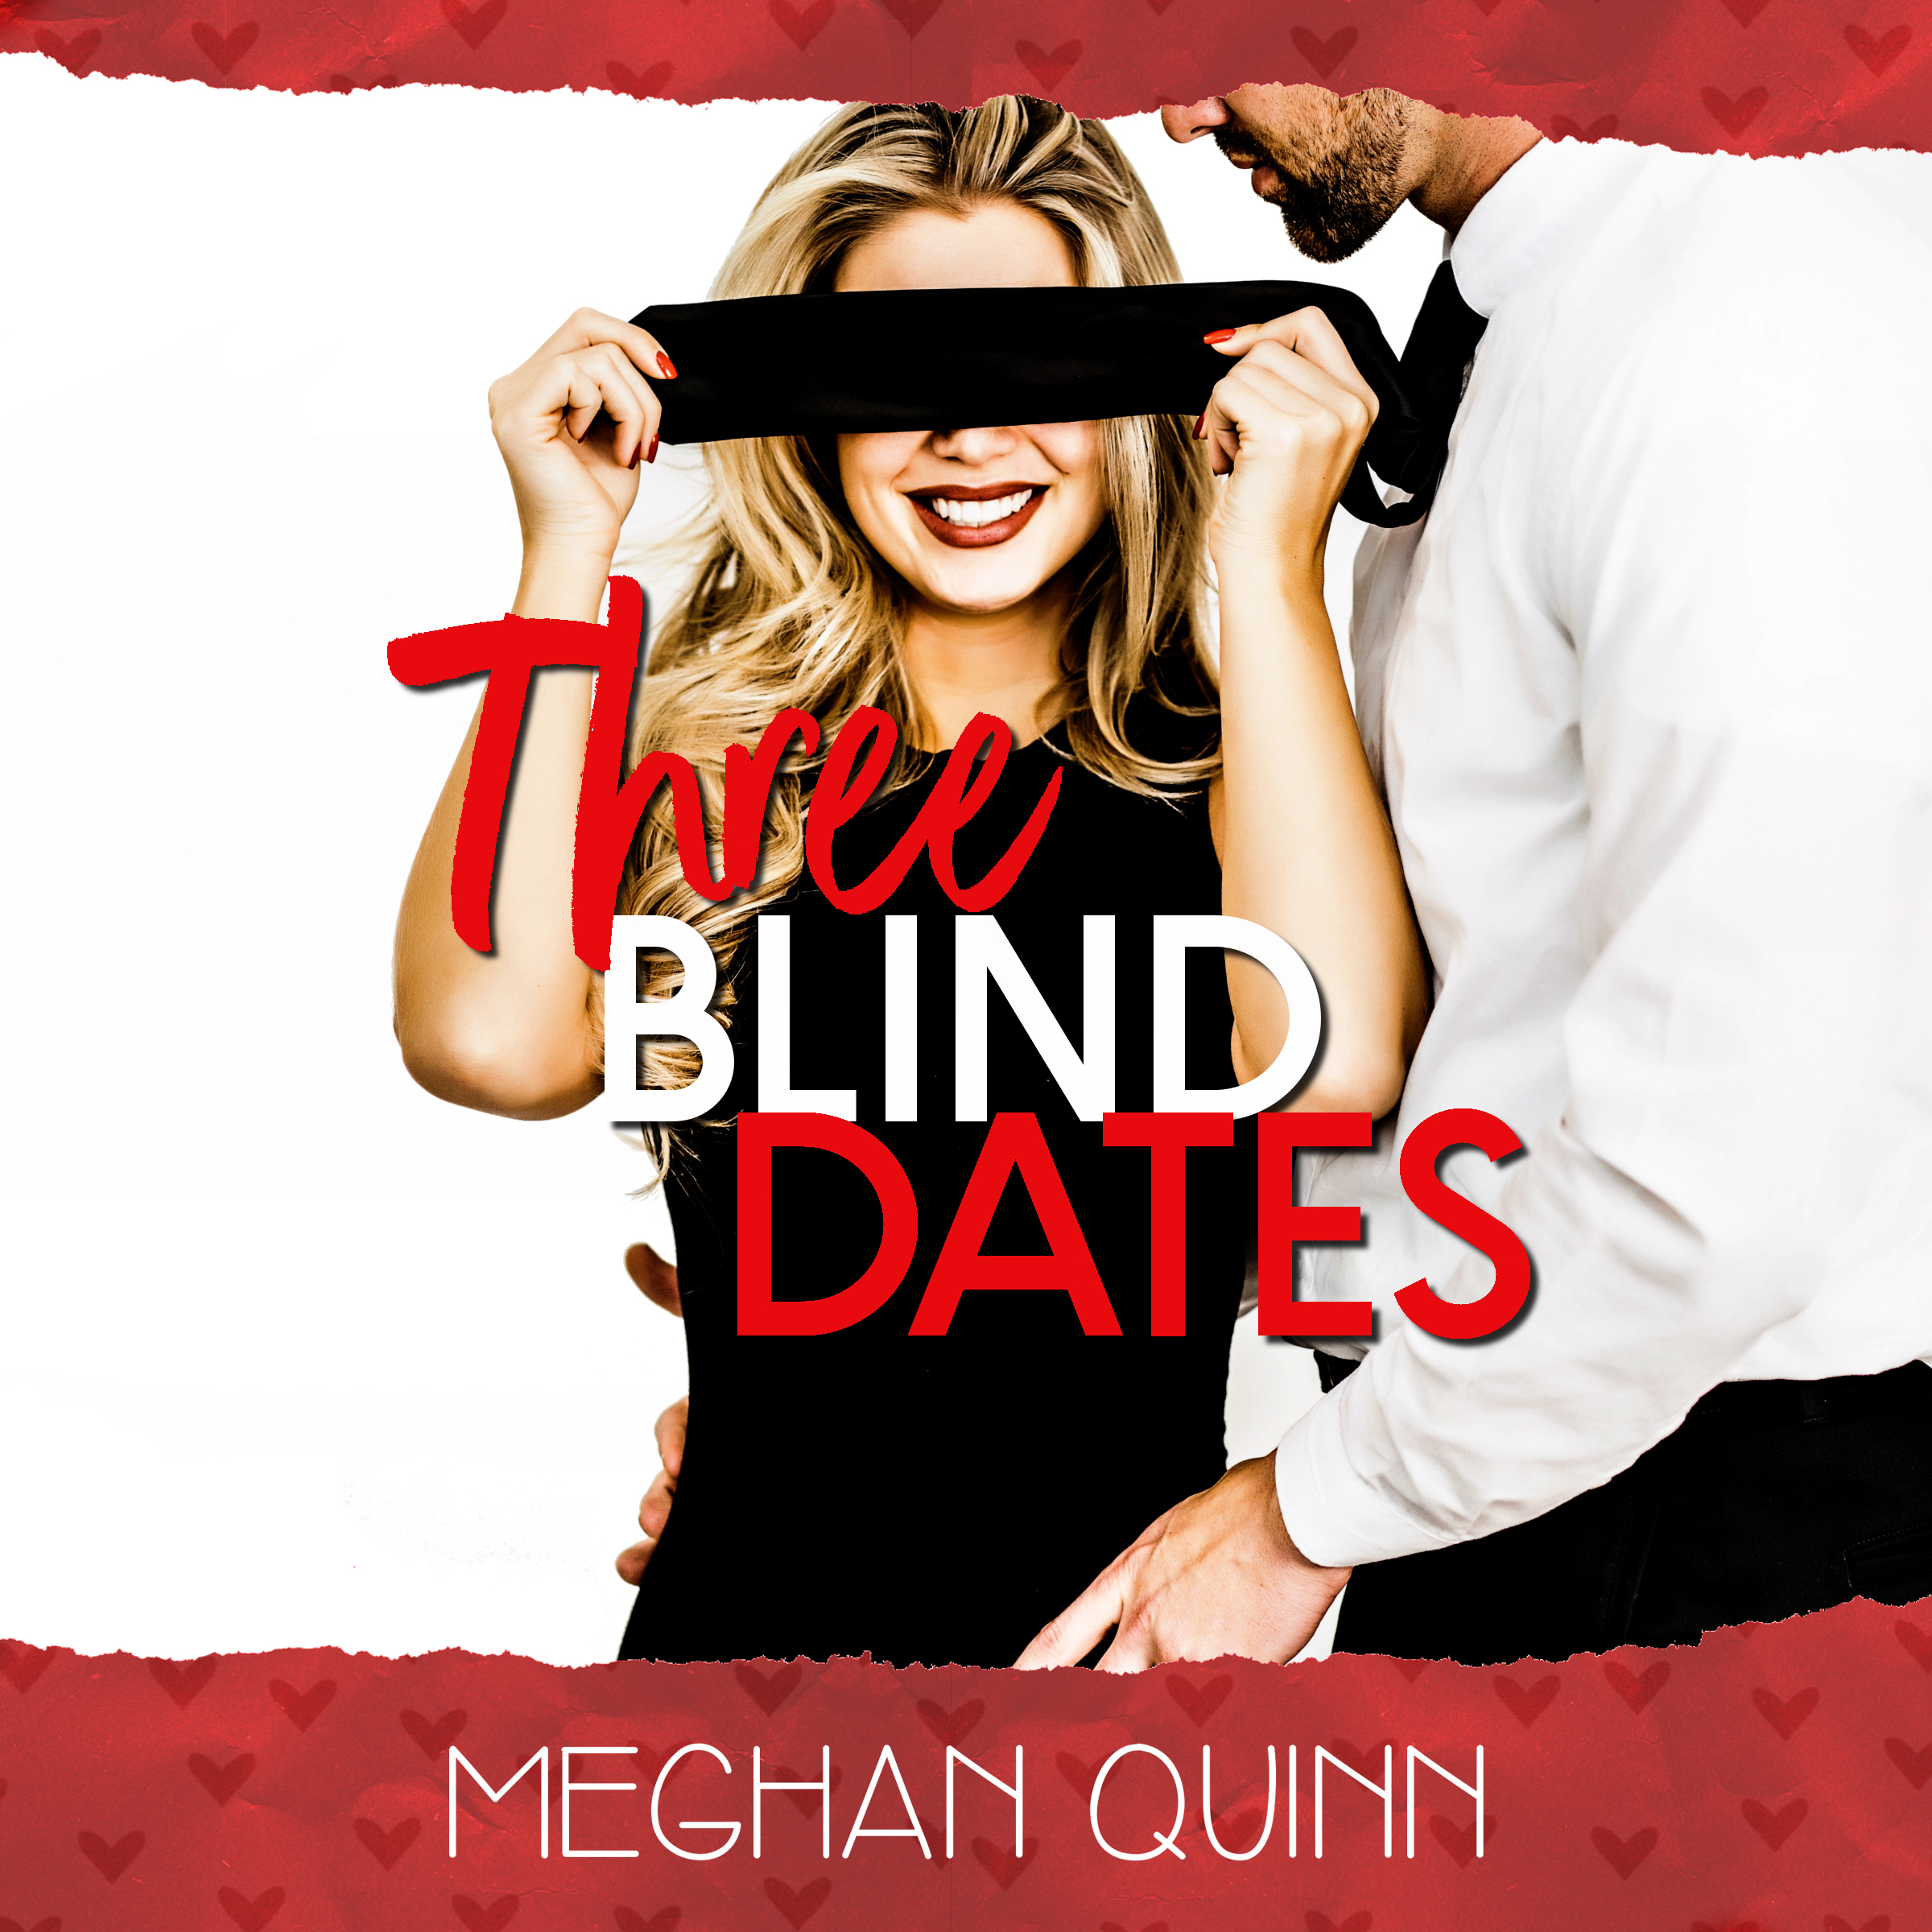 Blind dating series